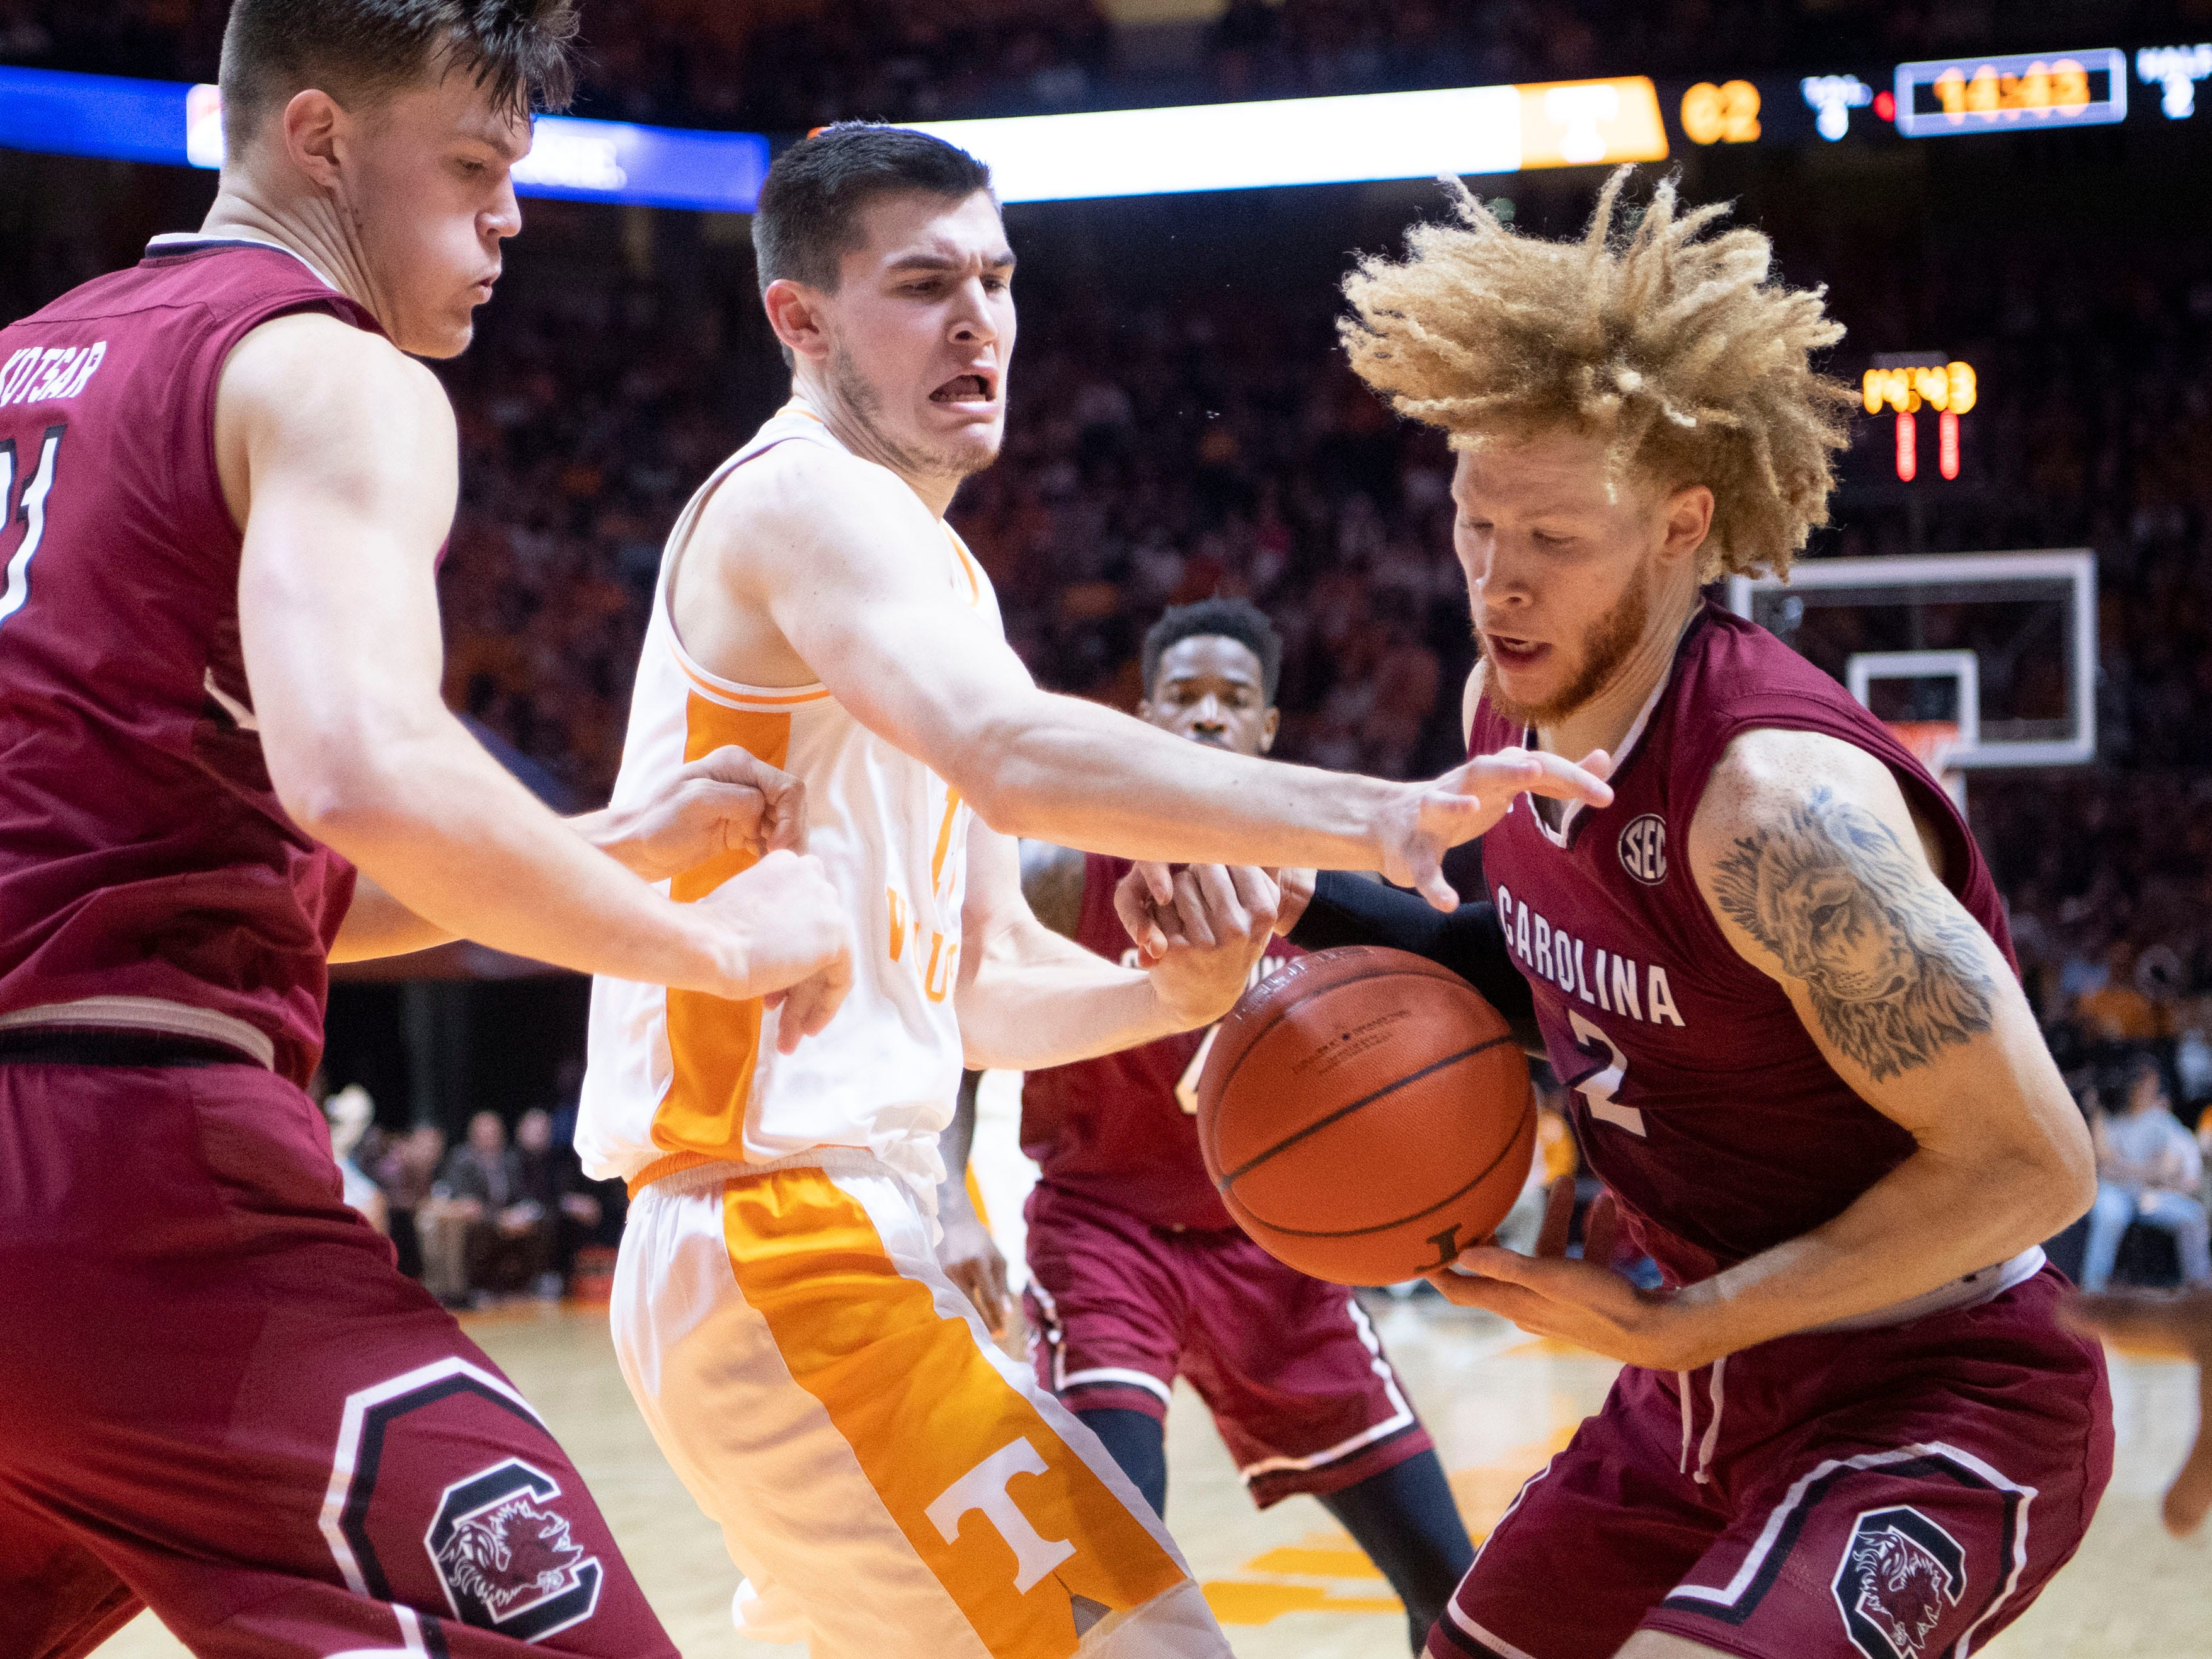 South Carolina's Mark Kotsar (21) and Hassani Gravett (2) battle for the loose ball with Tennessee's John Fulkerson (10) on Wednesday, February 13, 2019.